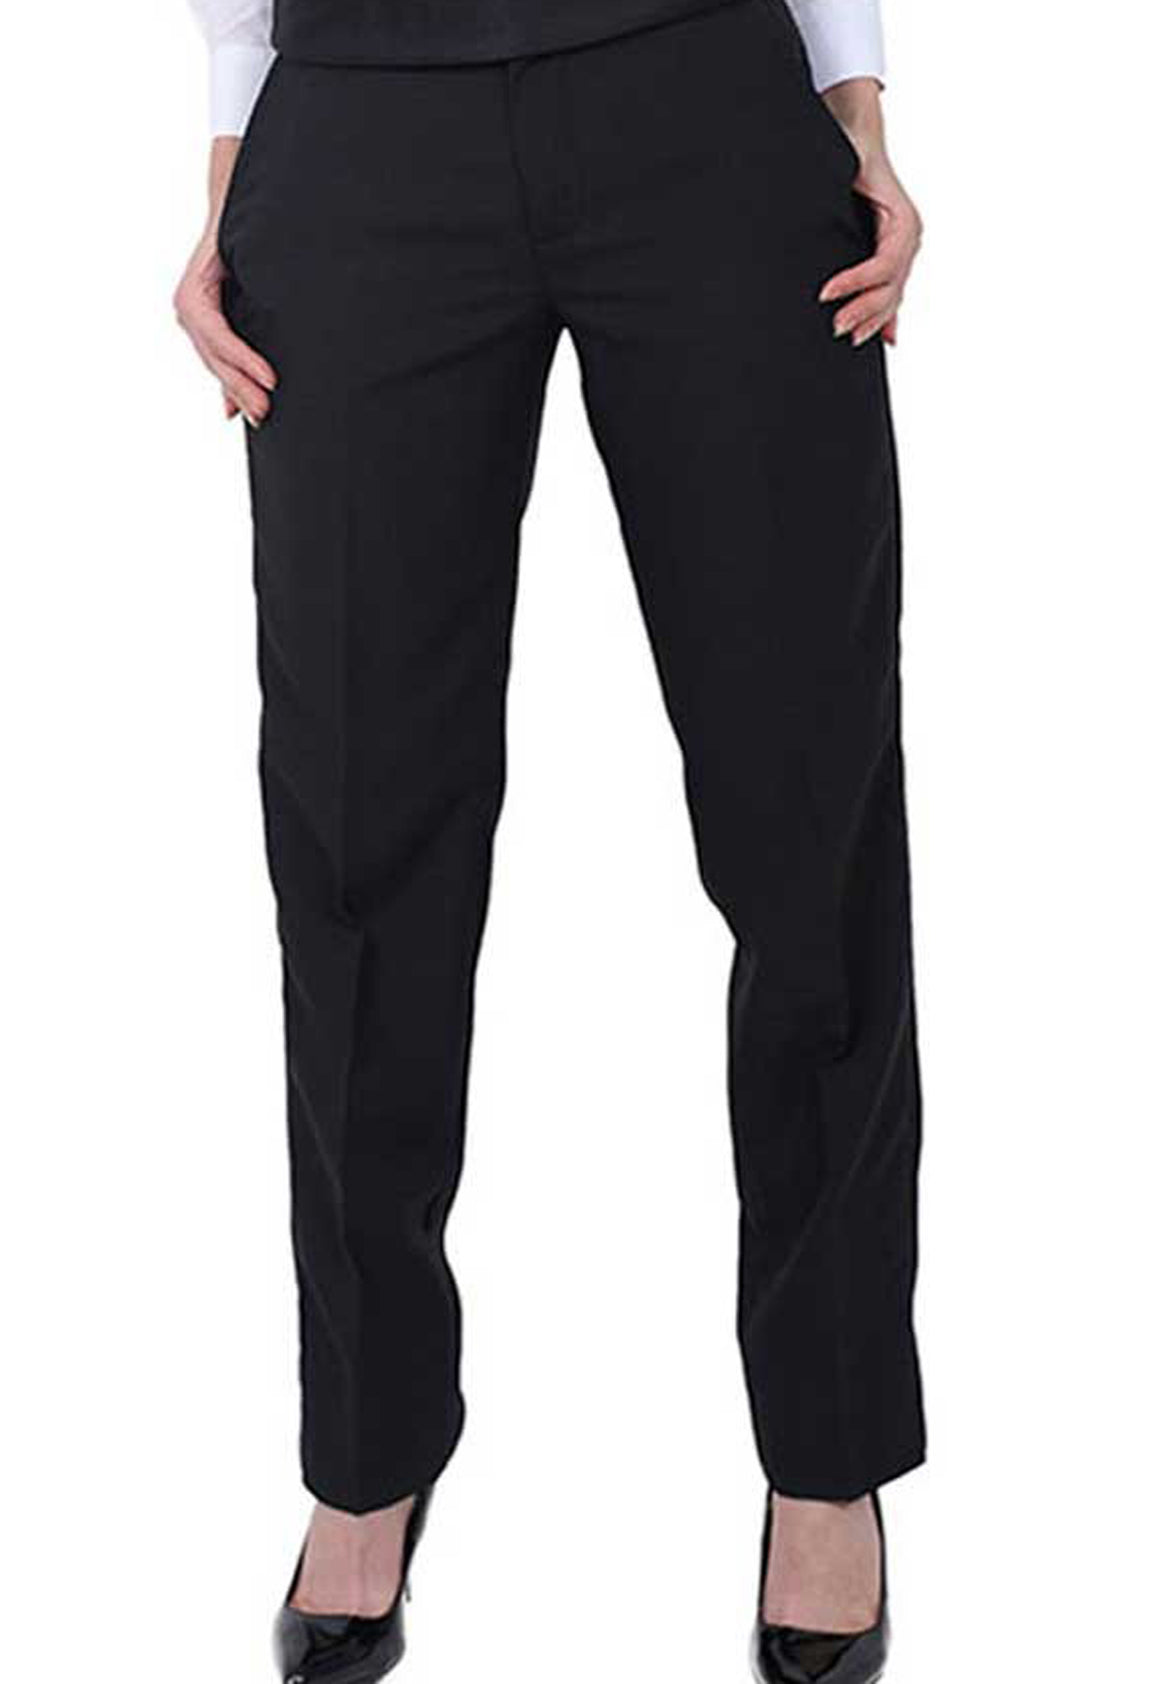 Women's Black, Flat Front, Dress Pants